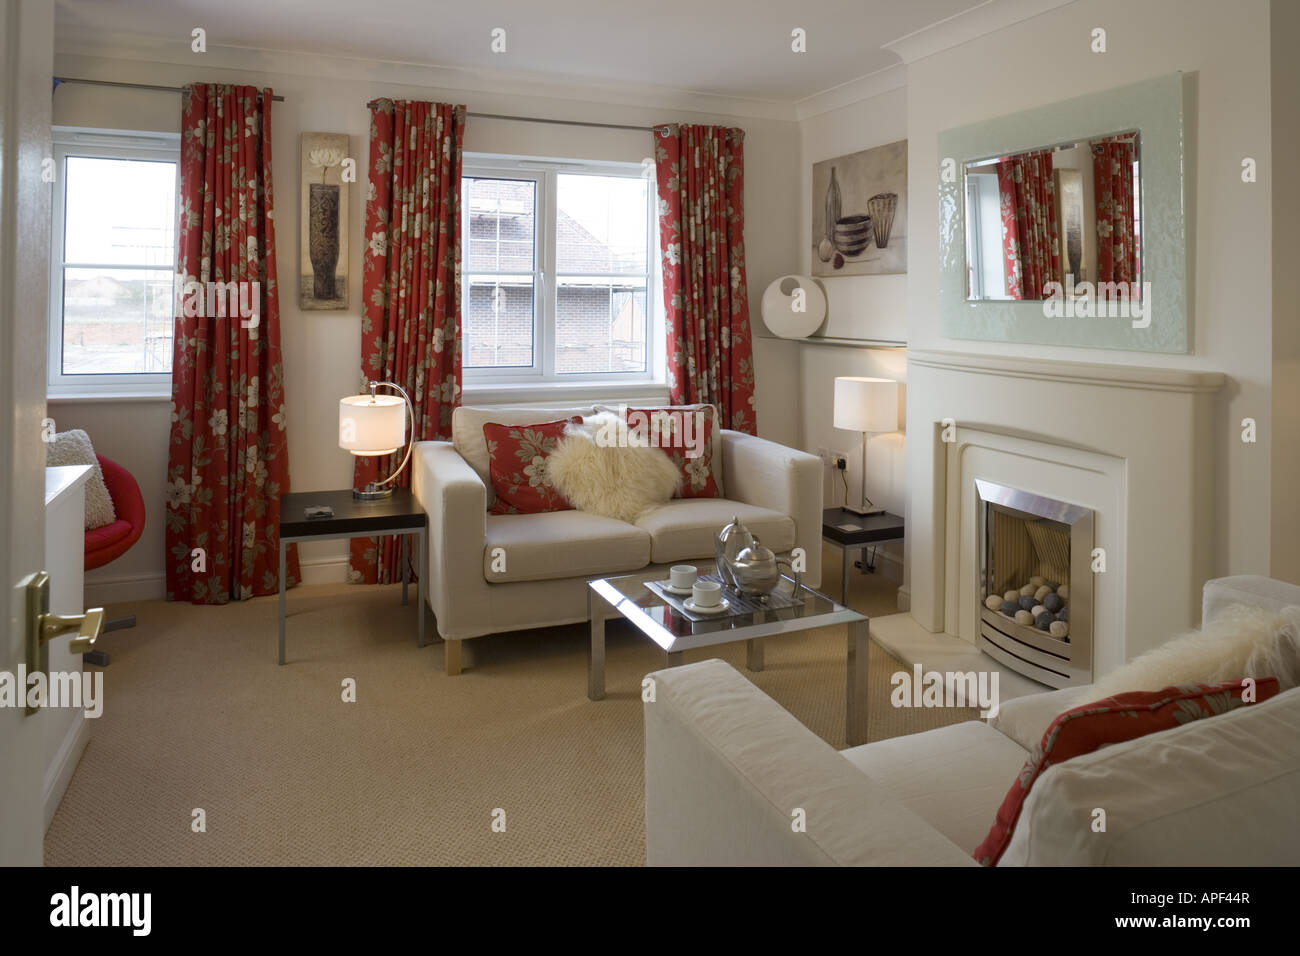 Living Room With Floral Patterned And Co Ordinating Soft Furnishings